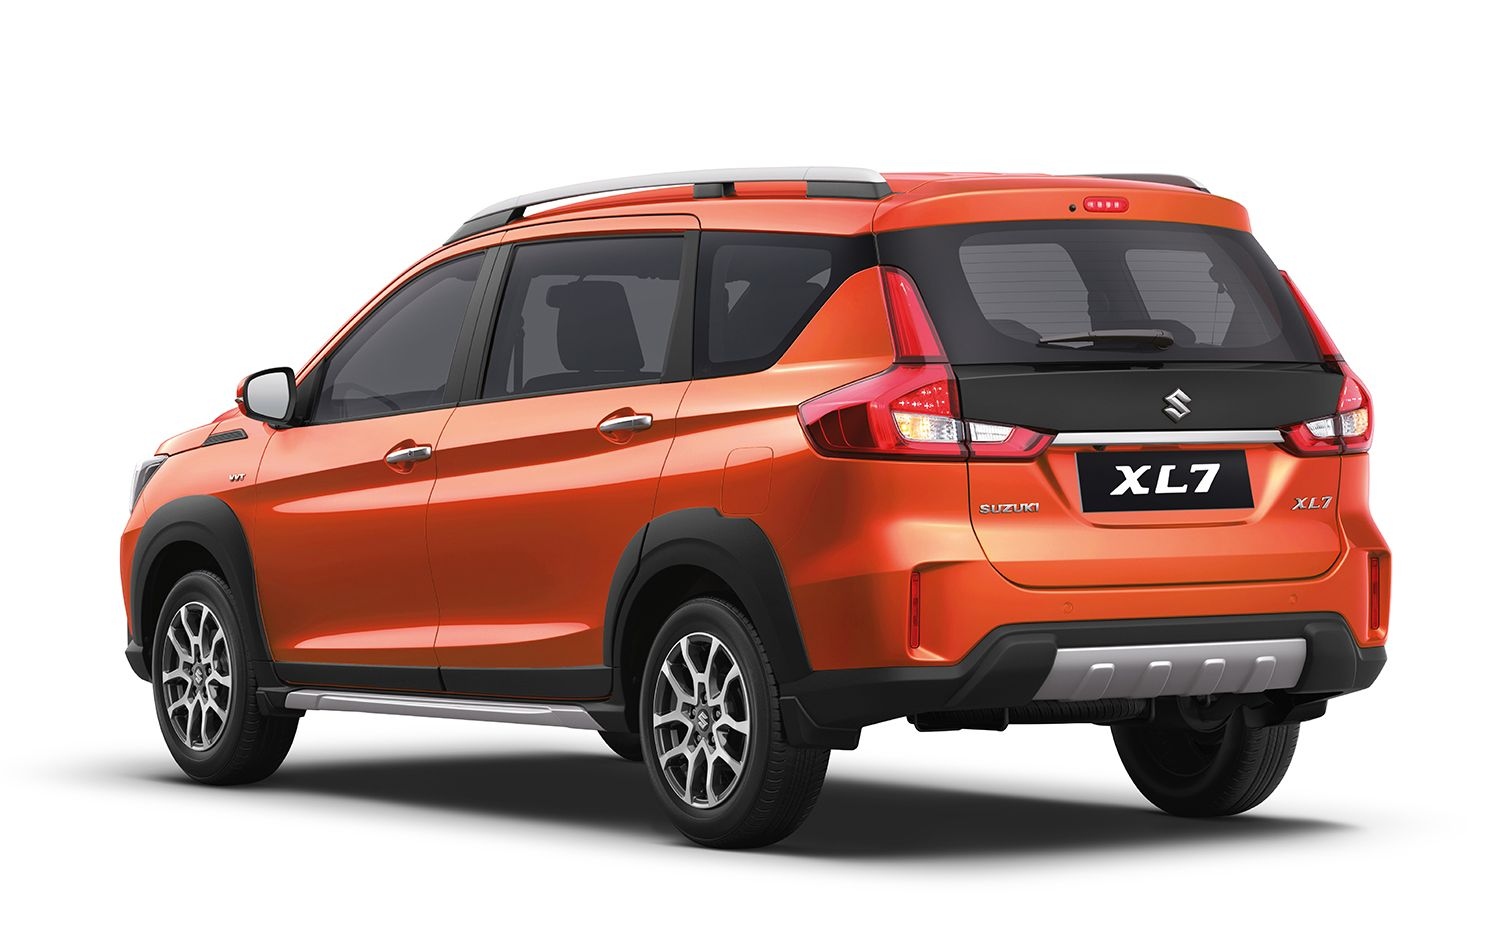 2020 suzuki xl7 thai price and specs in 2020 suzuki fuel economy thai 2020 suzuki xl7 thai price and specs